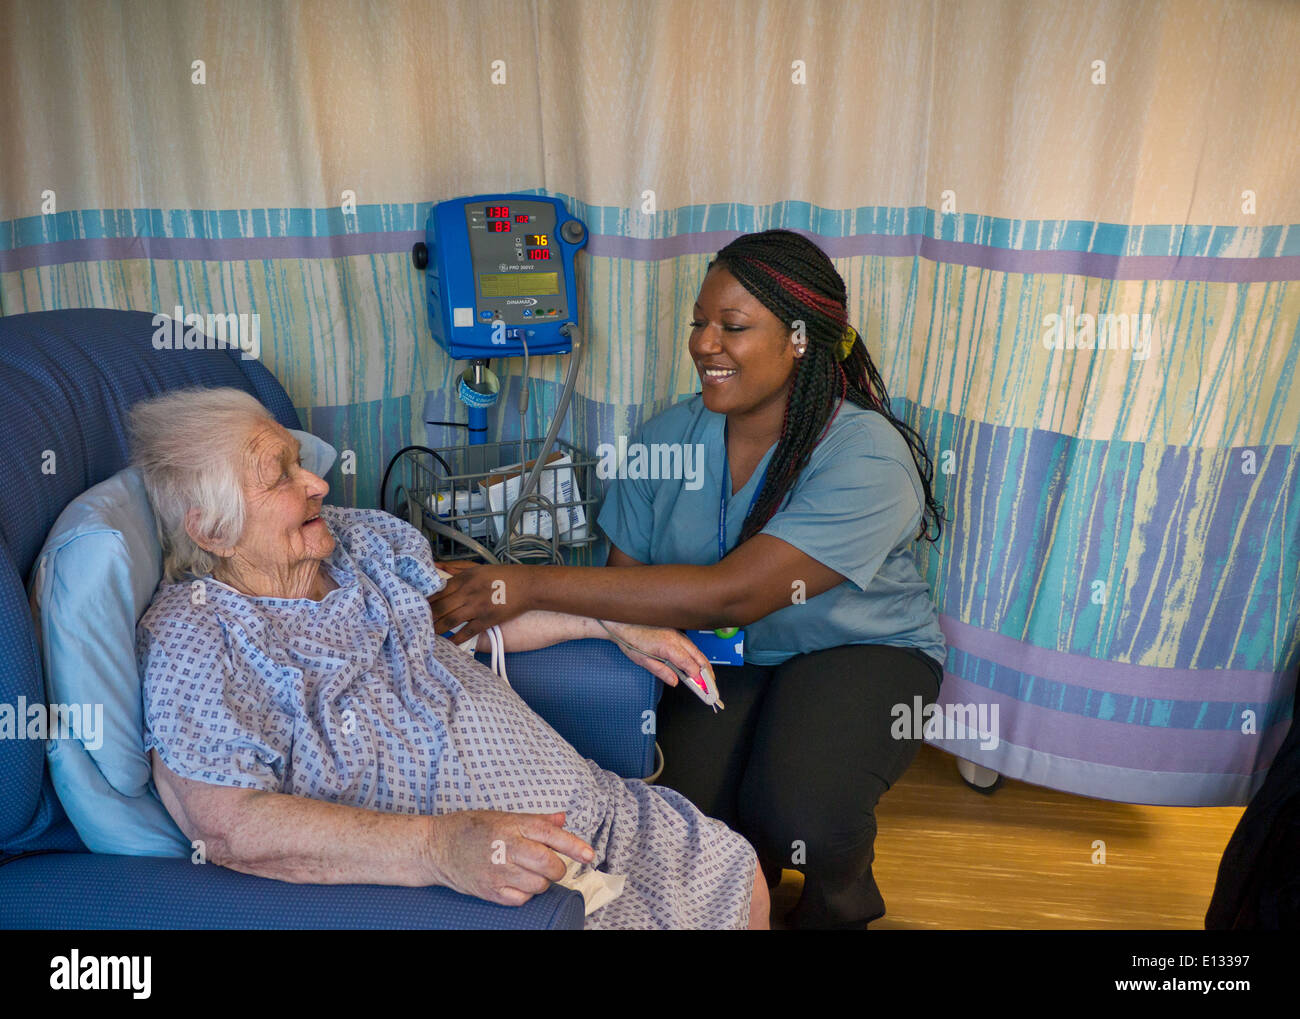 Contented elderly lady in hospital ward having her blood pressure taken by attractive smiling hospital nurse - Stock Image